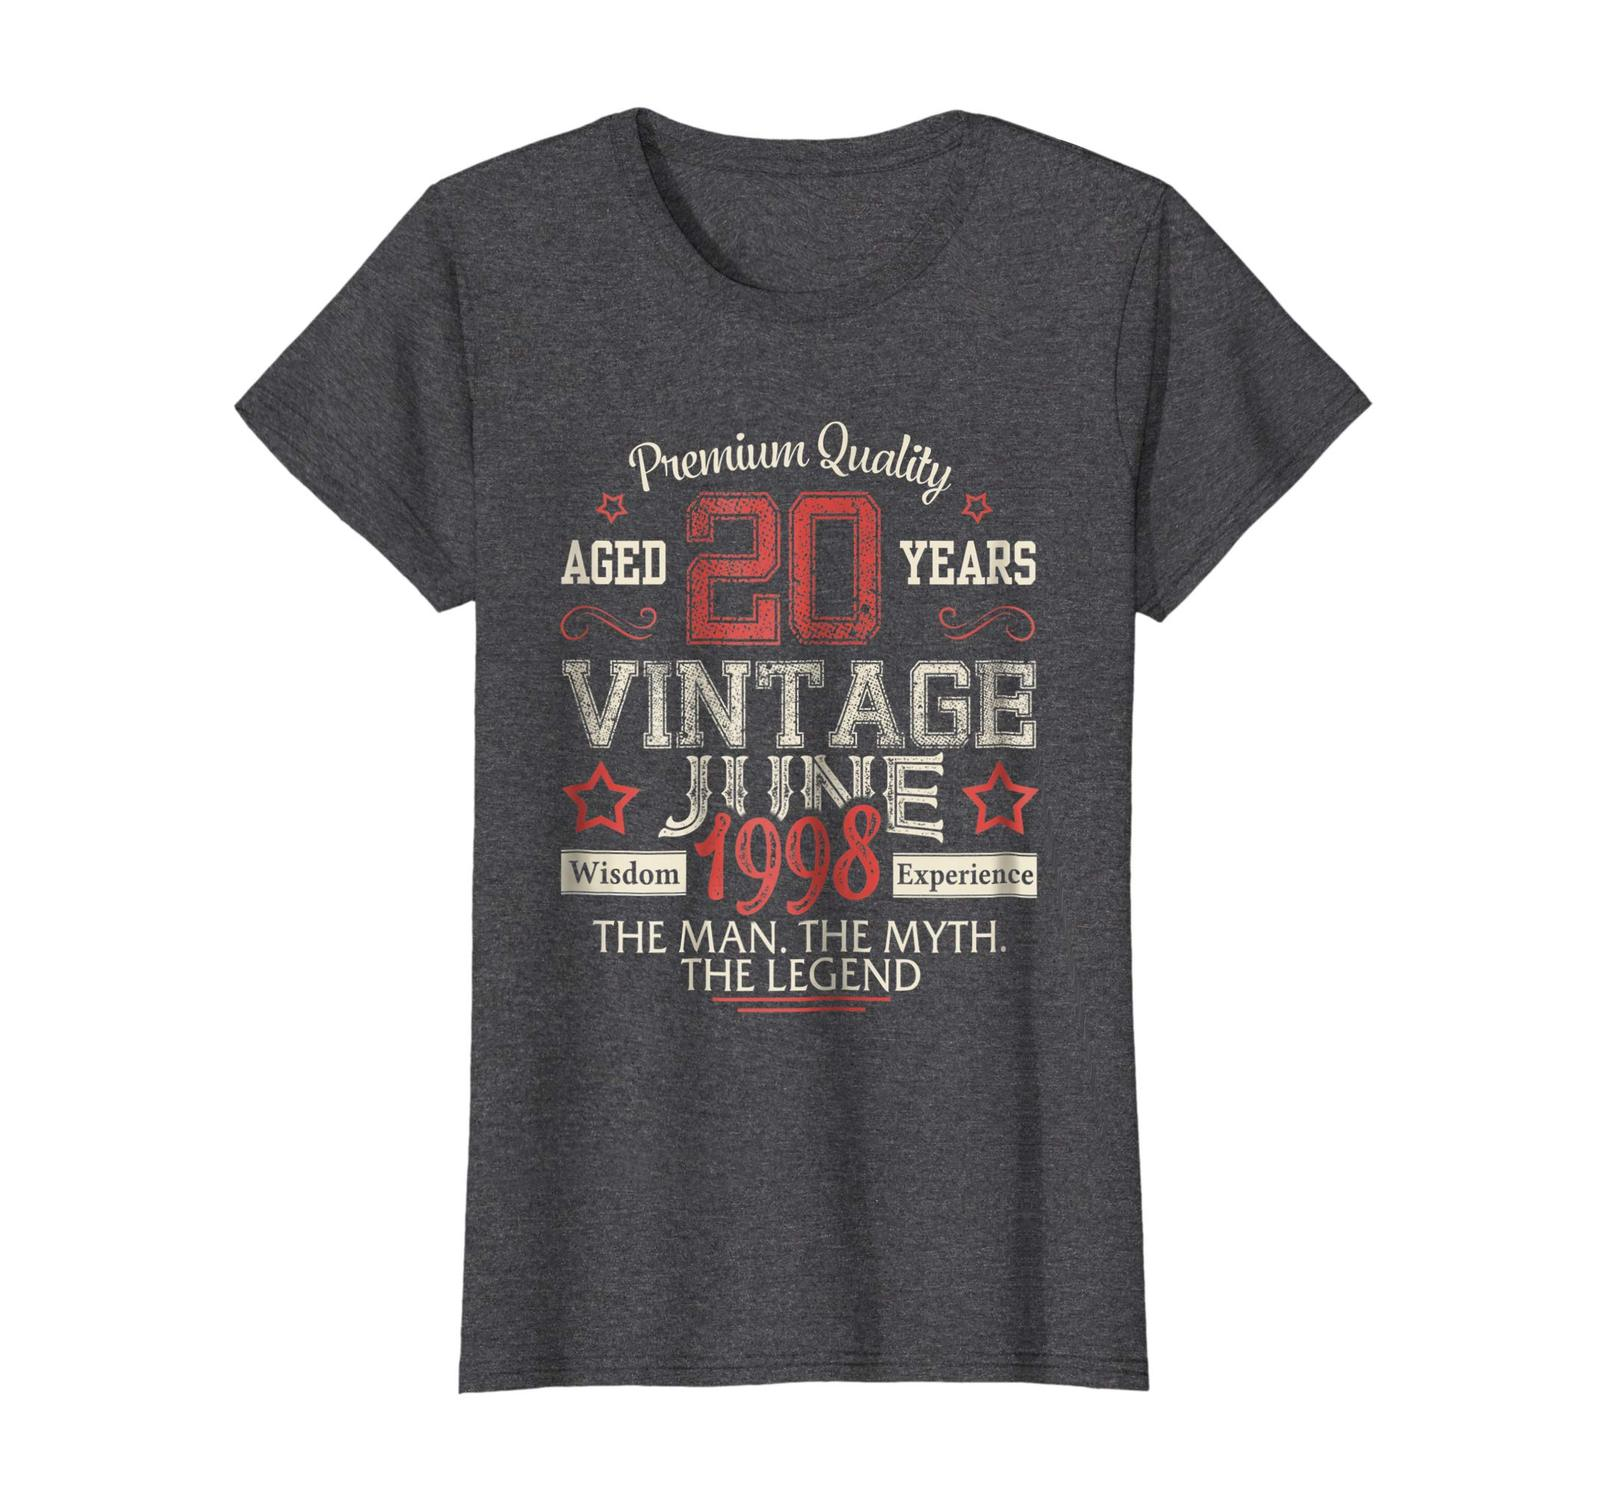 Uncle Shirts -   Vintage Legends Born In JUNE 1998 Aged 20 Years Old Being Wowen